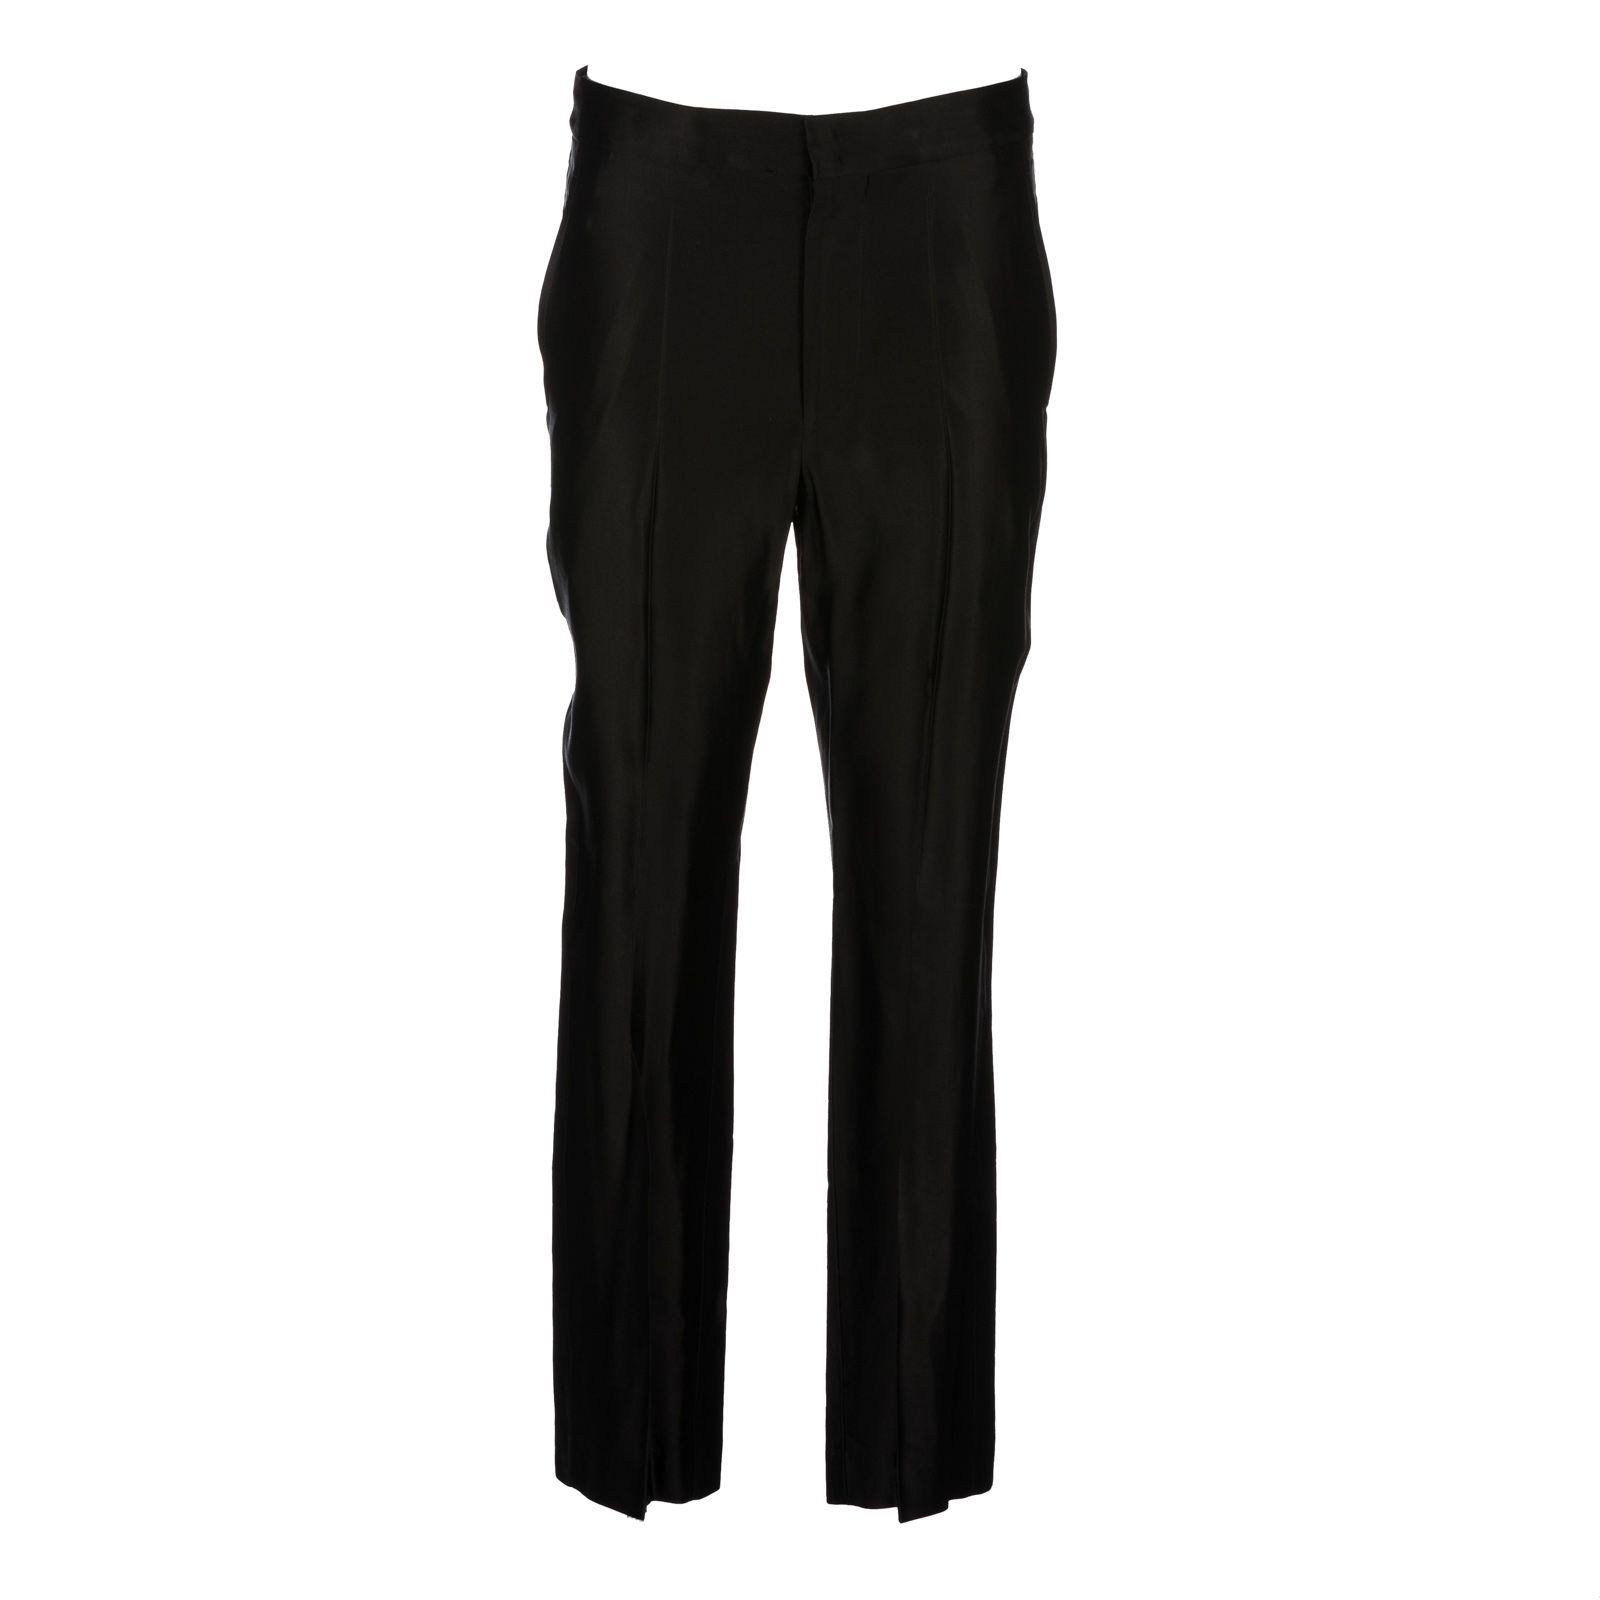 ROAN Trousers Spring/summer Isabel Marant Cheapest Price Cheap Price Excellent Cheap Sale Buy Official Site From China Cheap Price wbnUmVa9